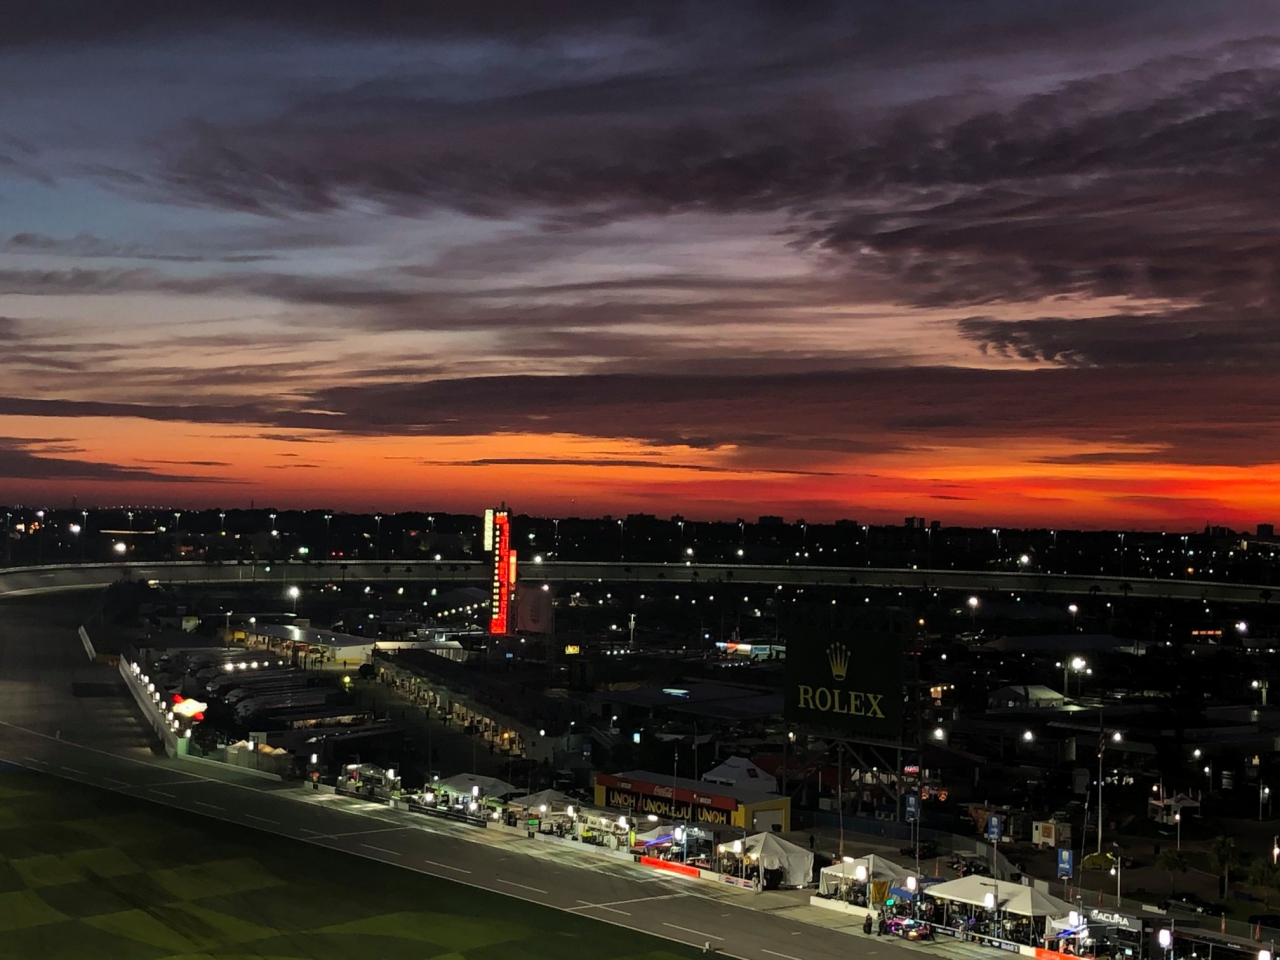 Rolex 24 at Daytona International Speedway - IMSA